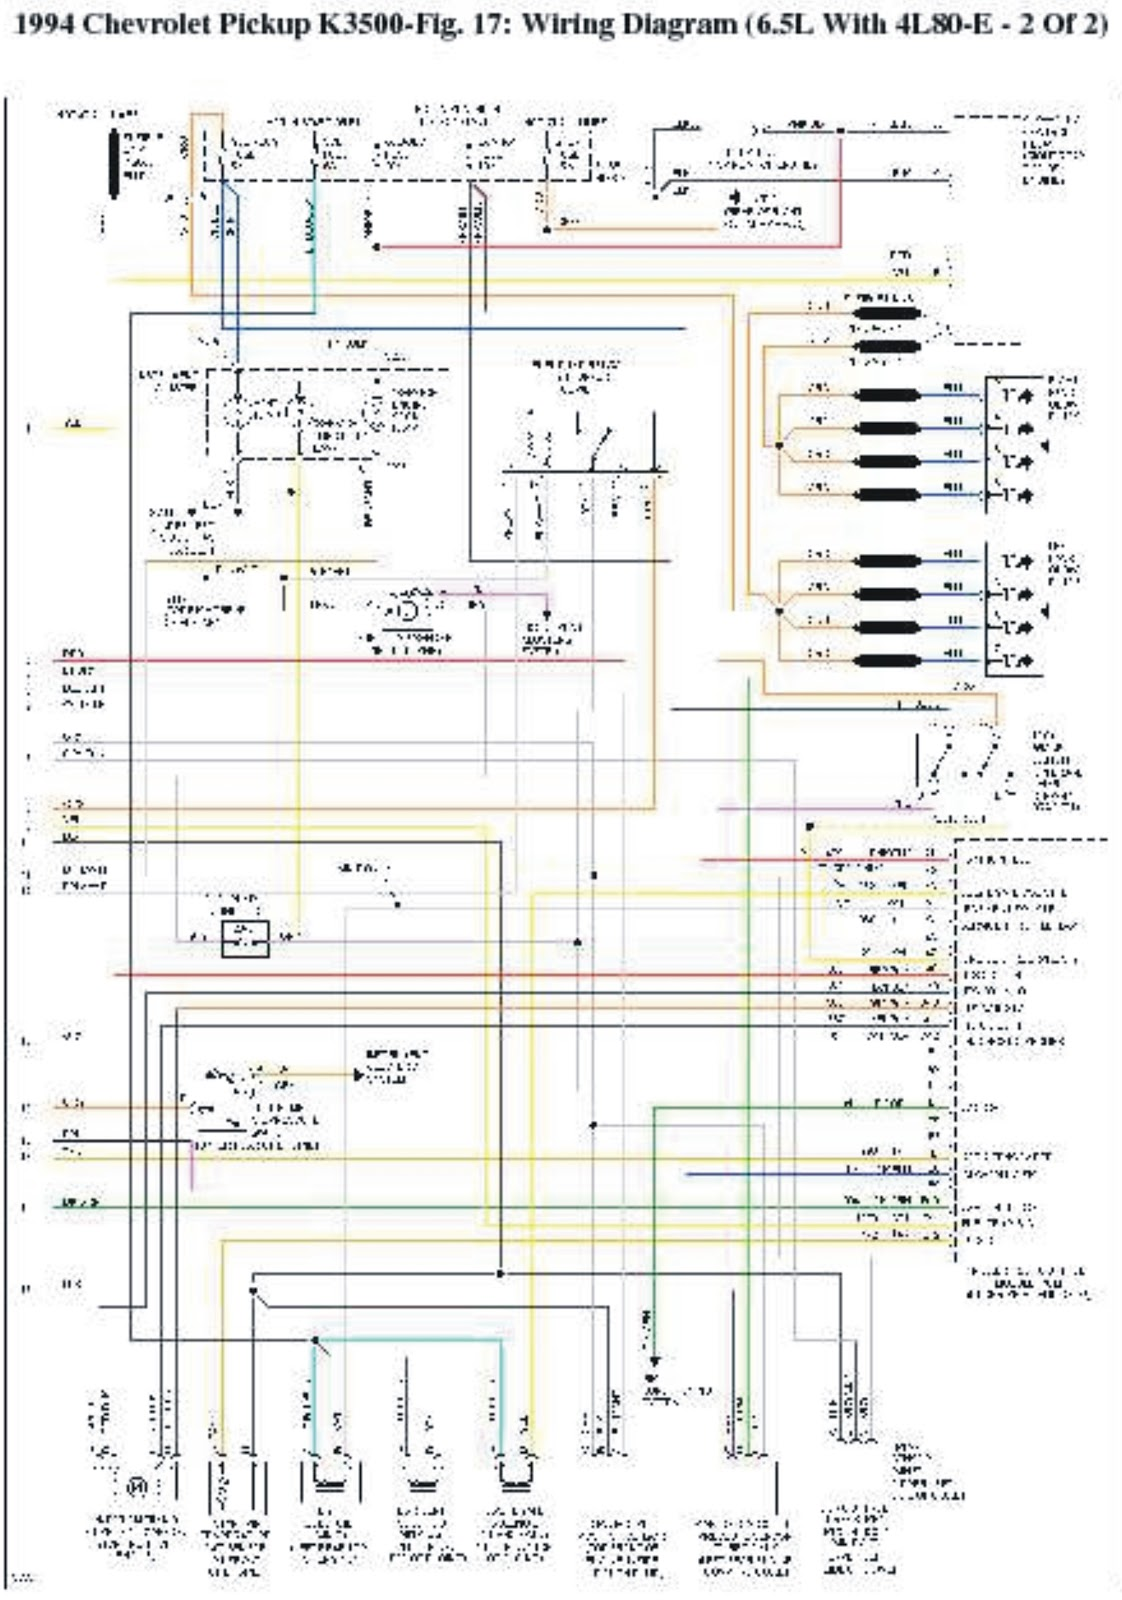 1994 chevy starter wiring diagram 1994 chevrolet pick-up k3500 wiring diagrams | wiring diagrams center 1994 chevy 2500 wiring diagram